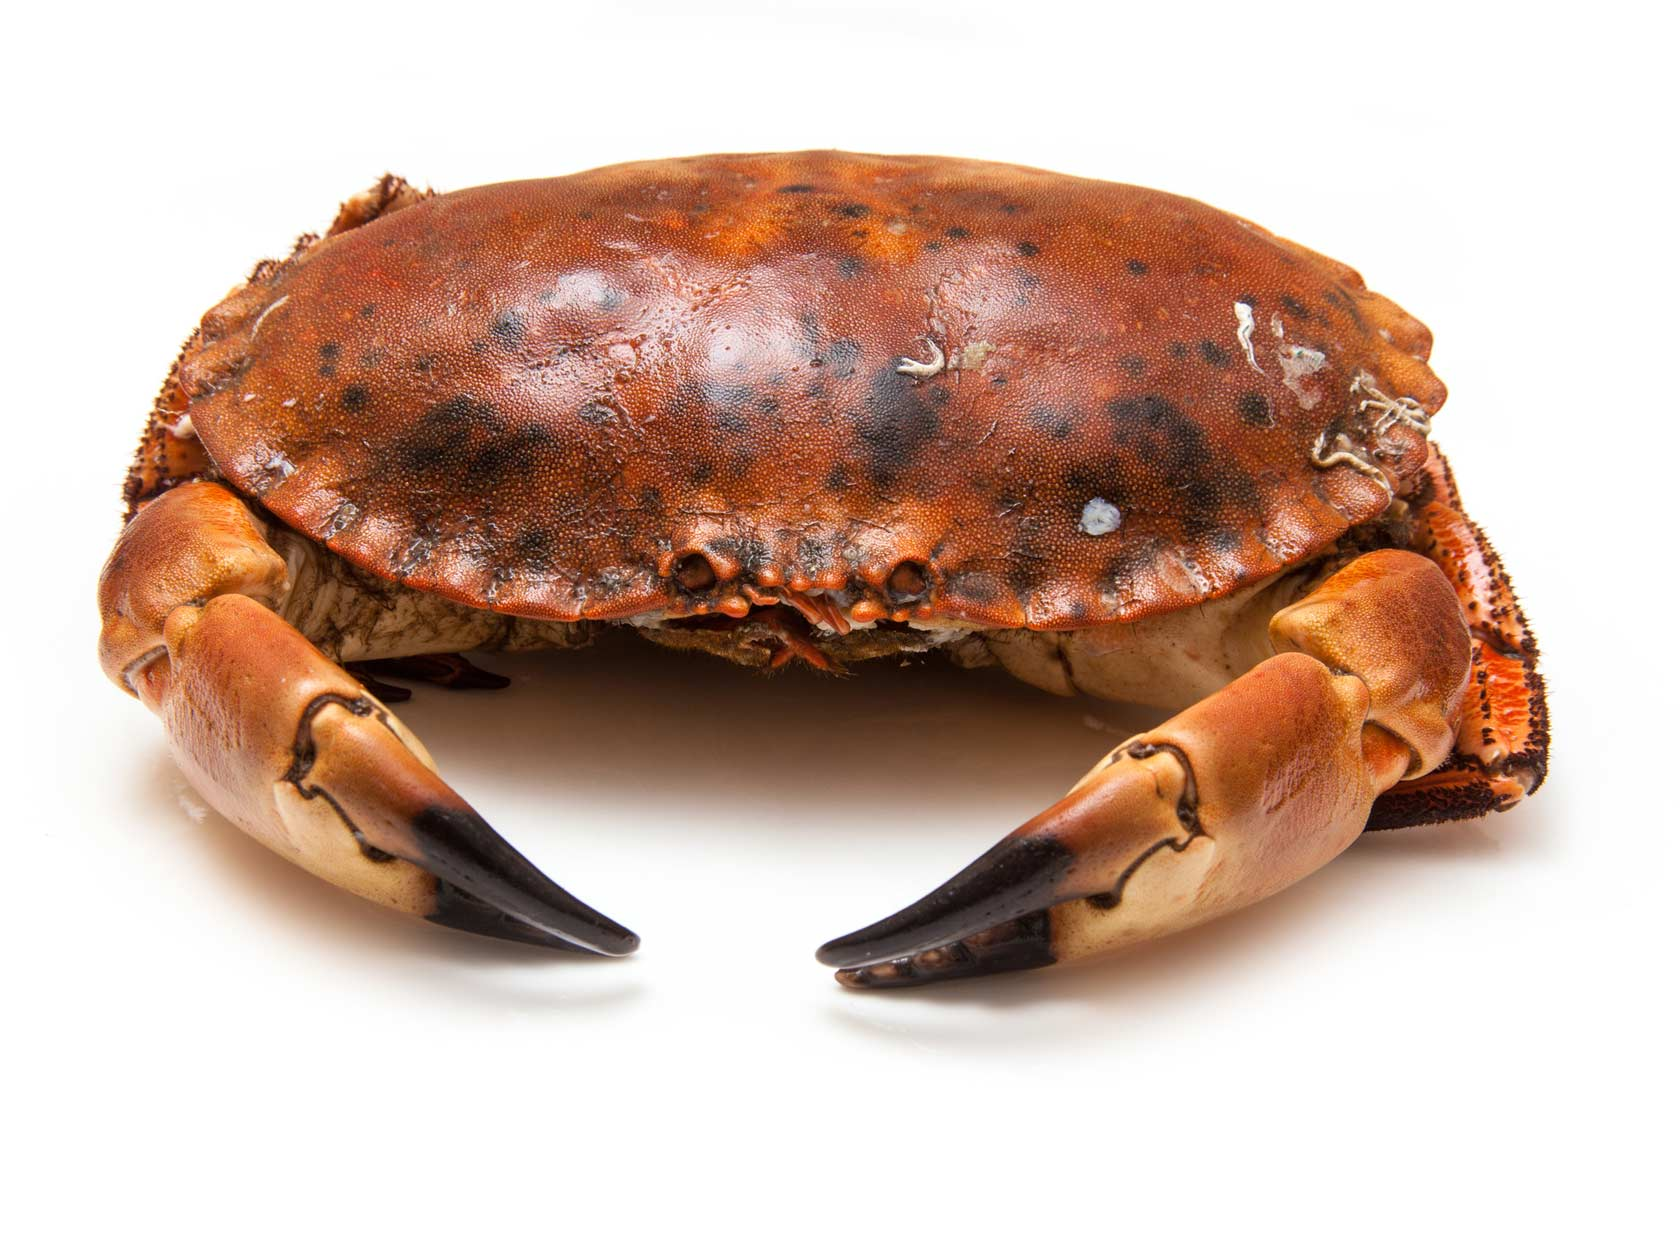 A fine brown crab